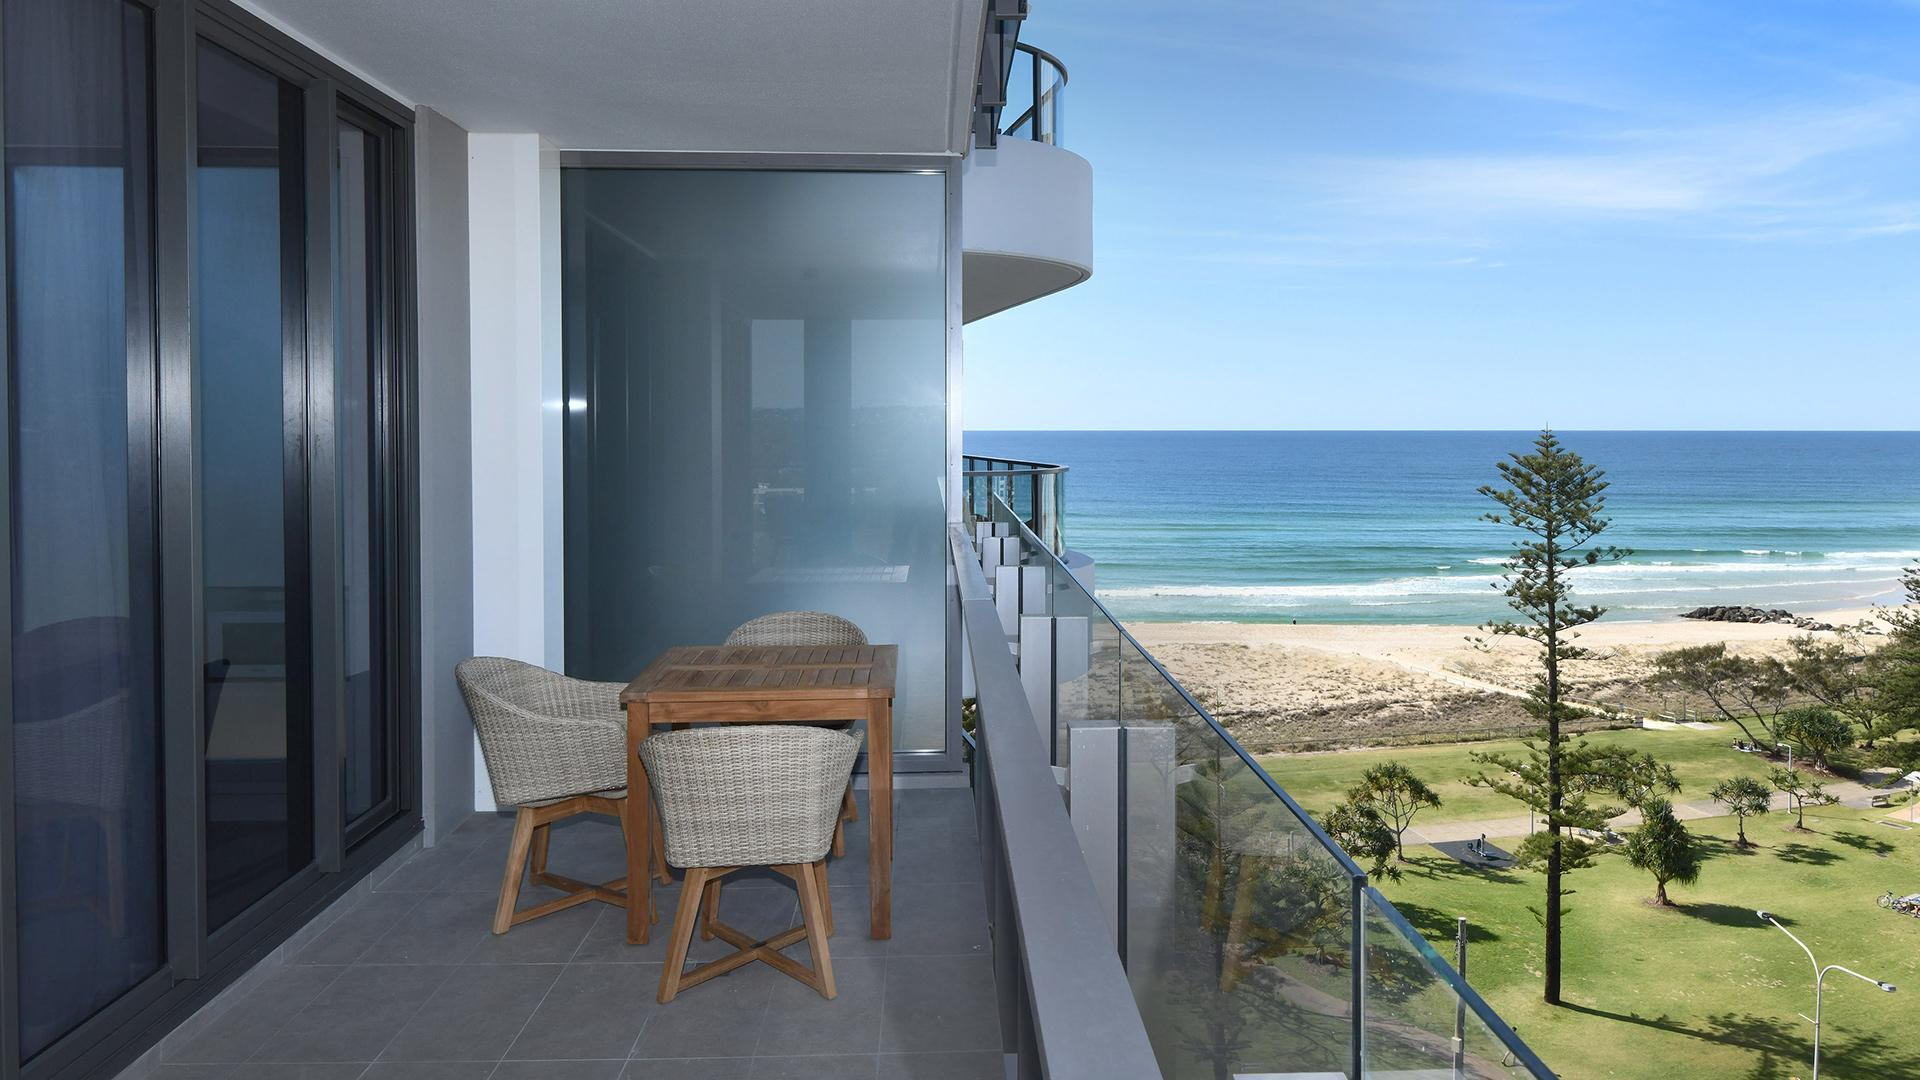 Two Bedroom Scenic Ocean View Apartment image 1 at X Kirra Apartments by City of Gold Coast, Queensland, Australia